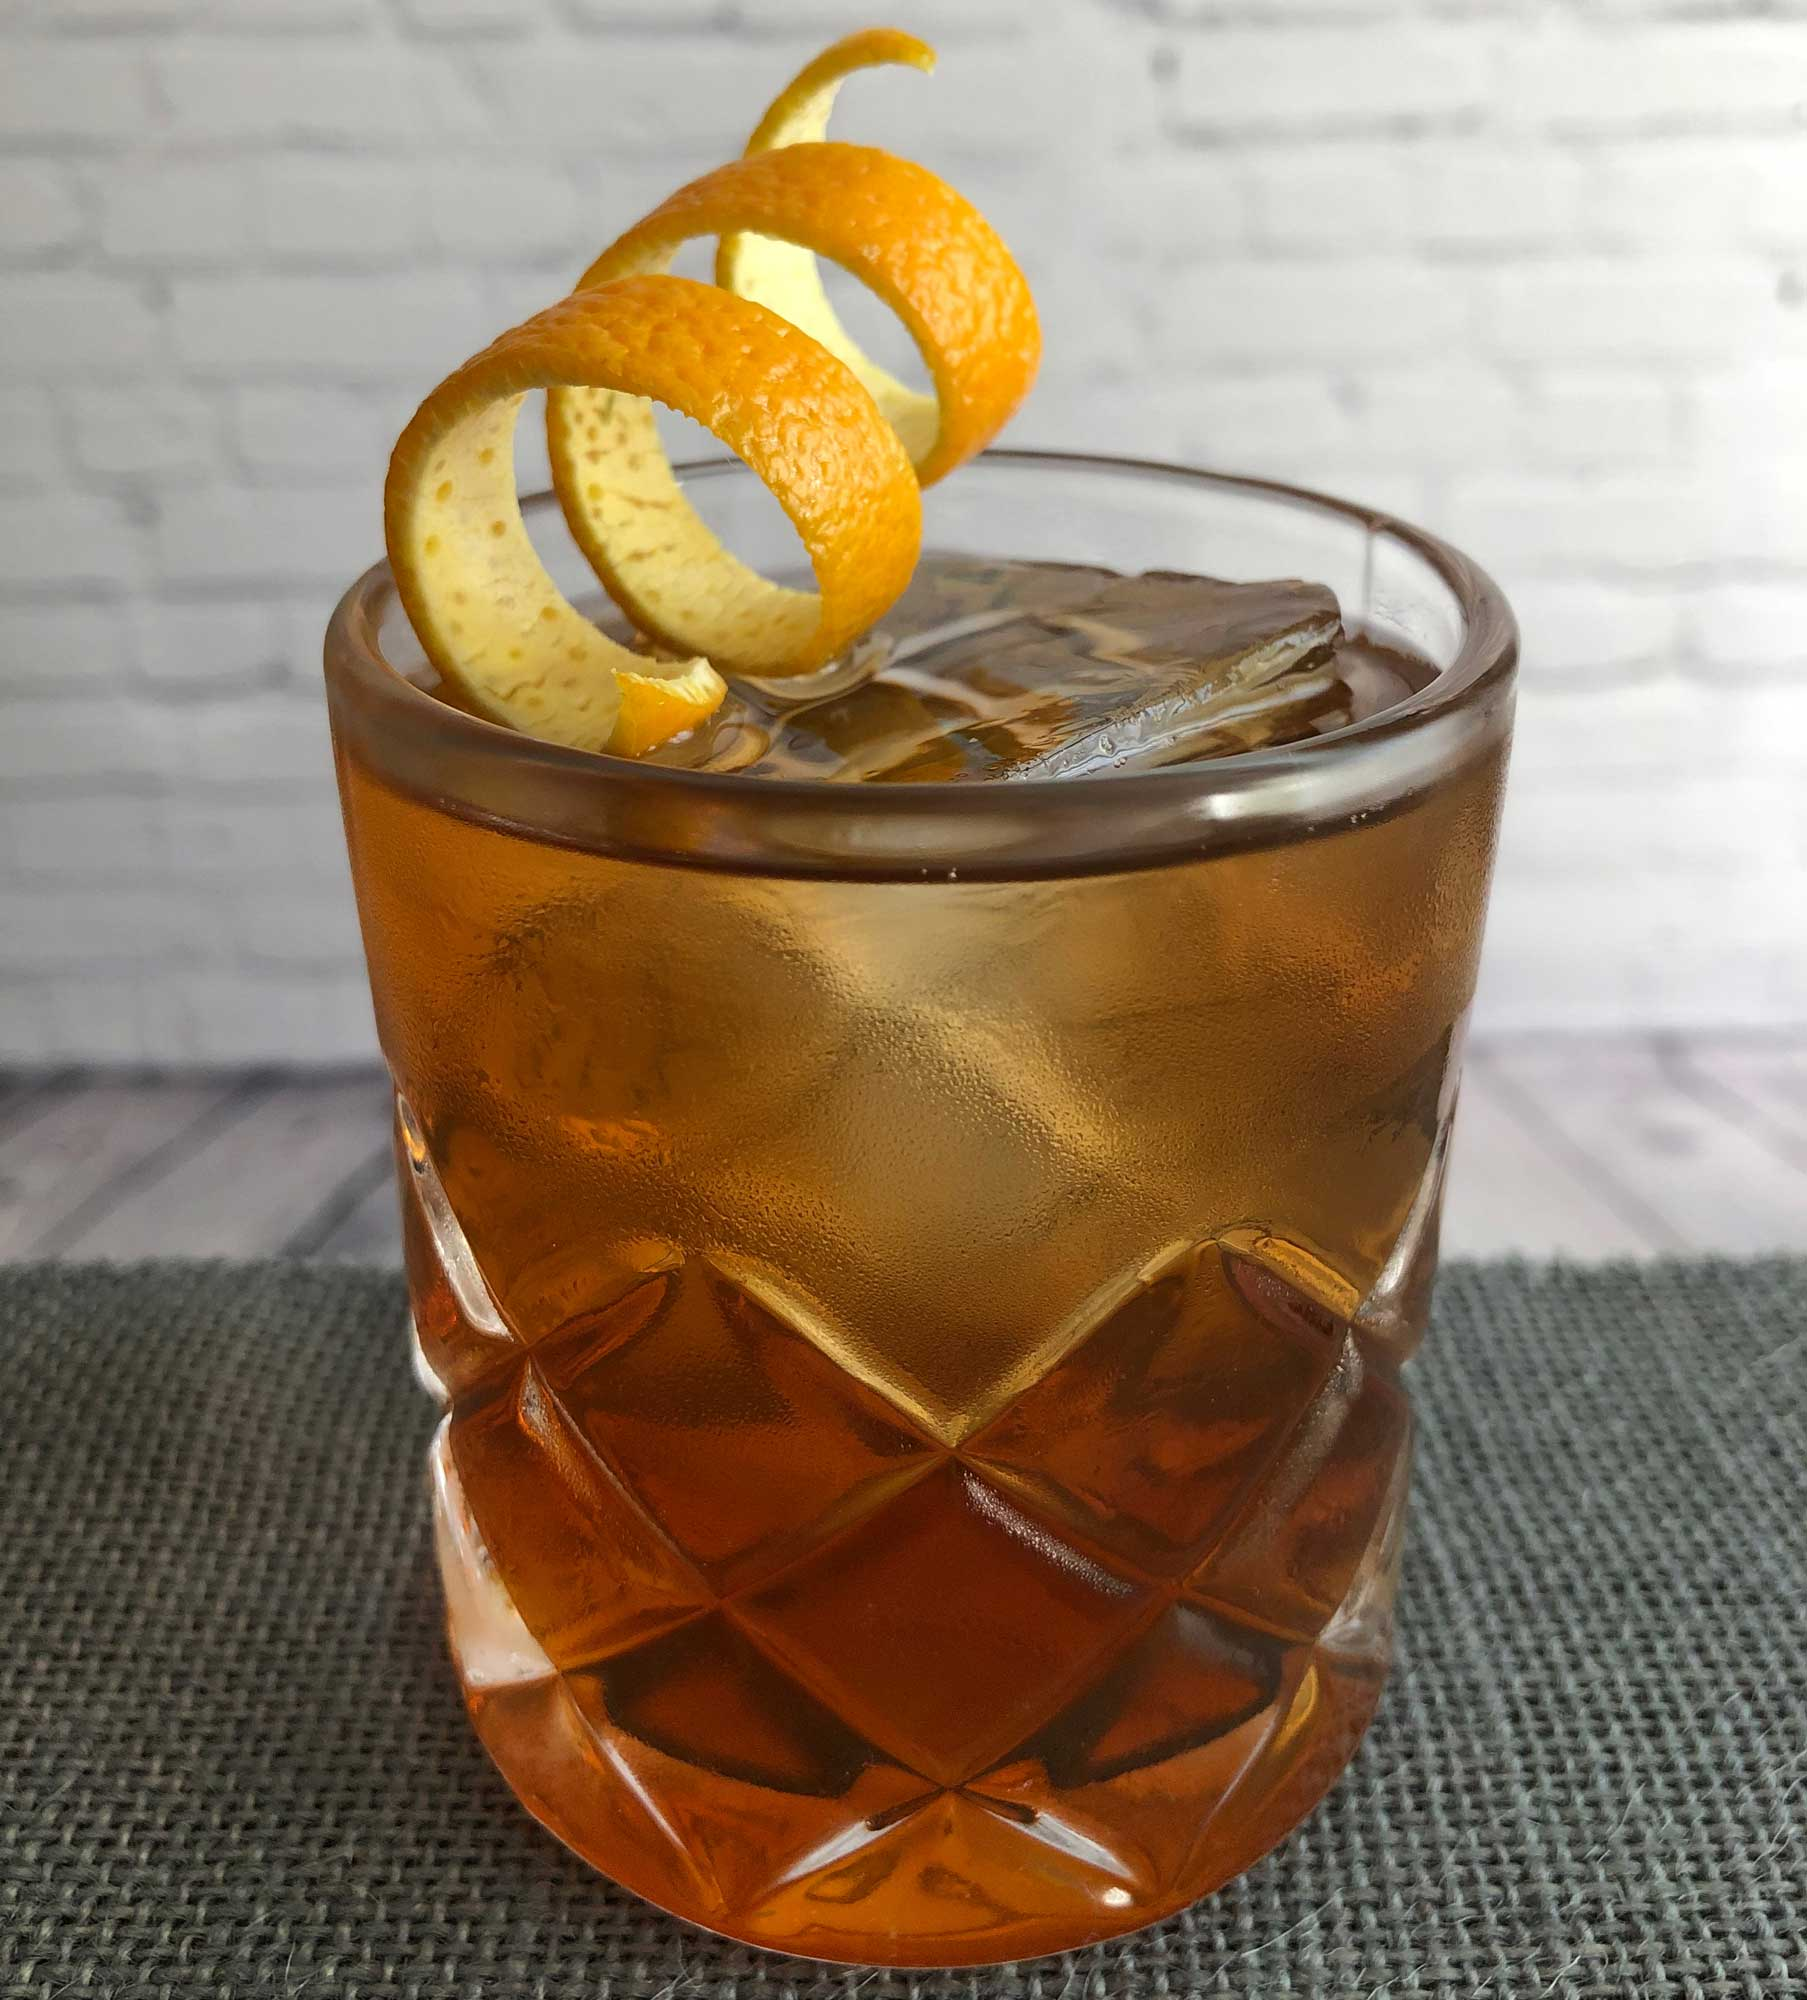 An example of the Sentier en Bastia, the mixed drink (cocktail) featuring rye whiskey, Mattei Cap Corse Rouge Quinquina, and Dolin Rouge Vermouth de Chambéry; photo by Lee Edwards